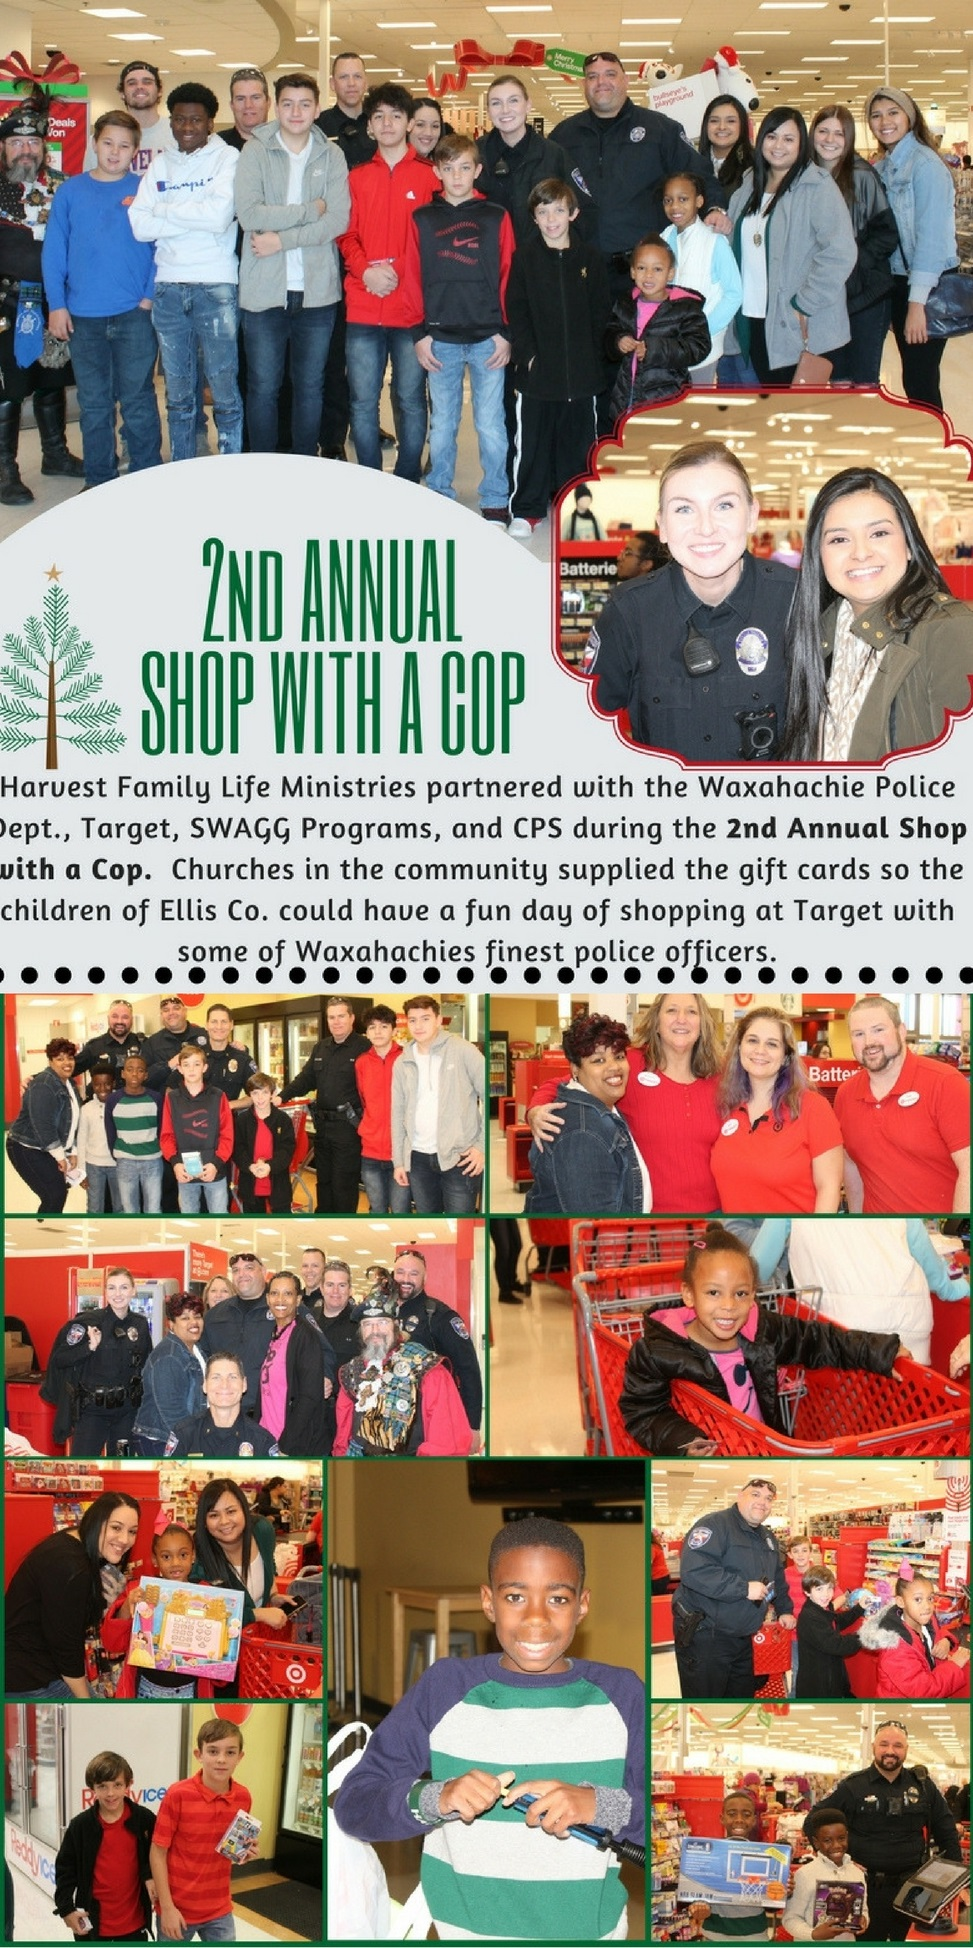 2nd Annual Shop with a Cop.jpg